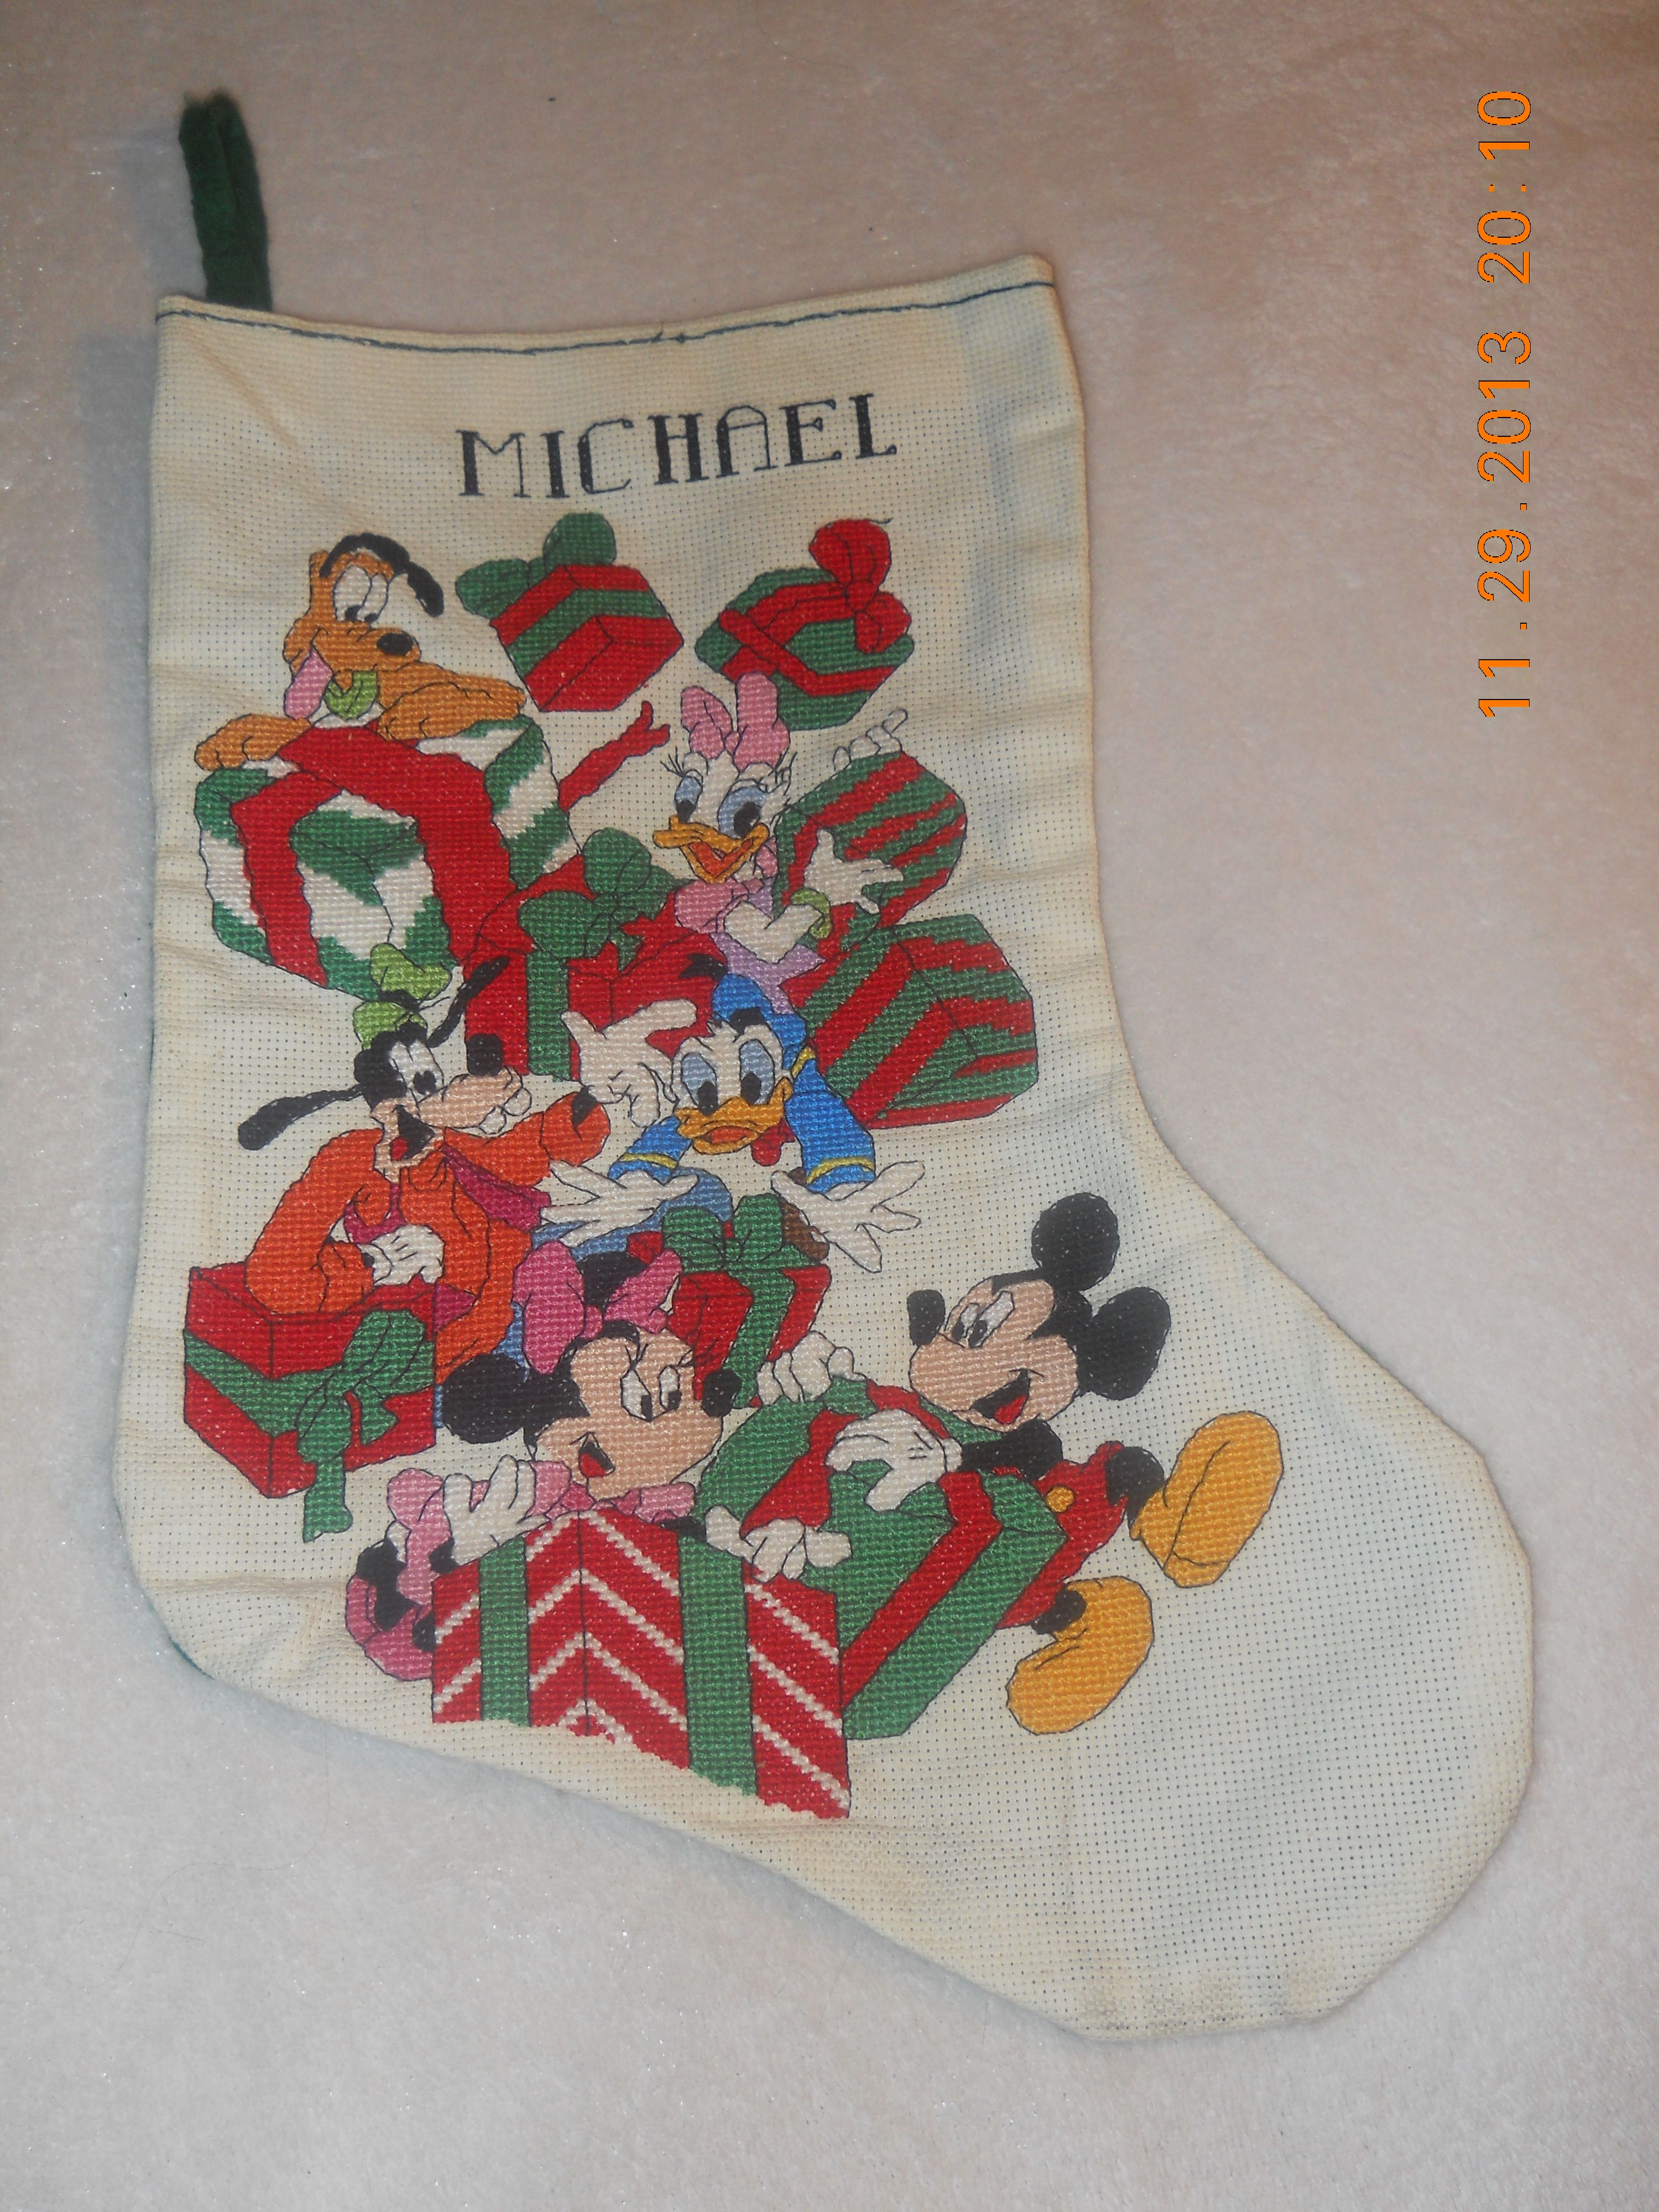 Our Grandson Michael's Christmas Stocking by David G. Sartain ...